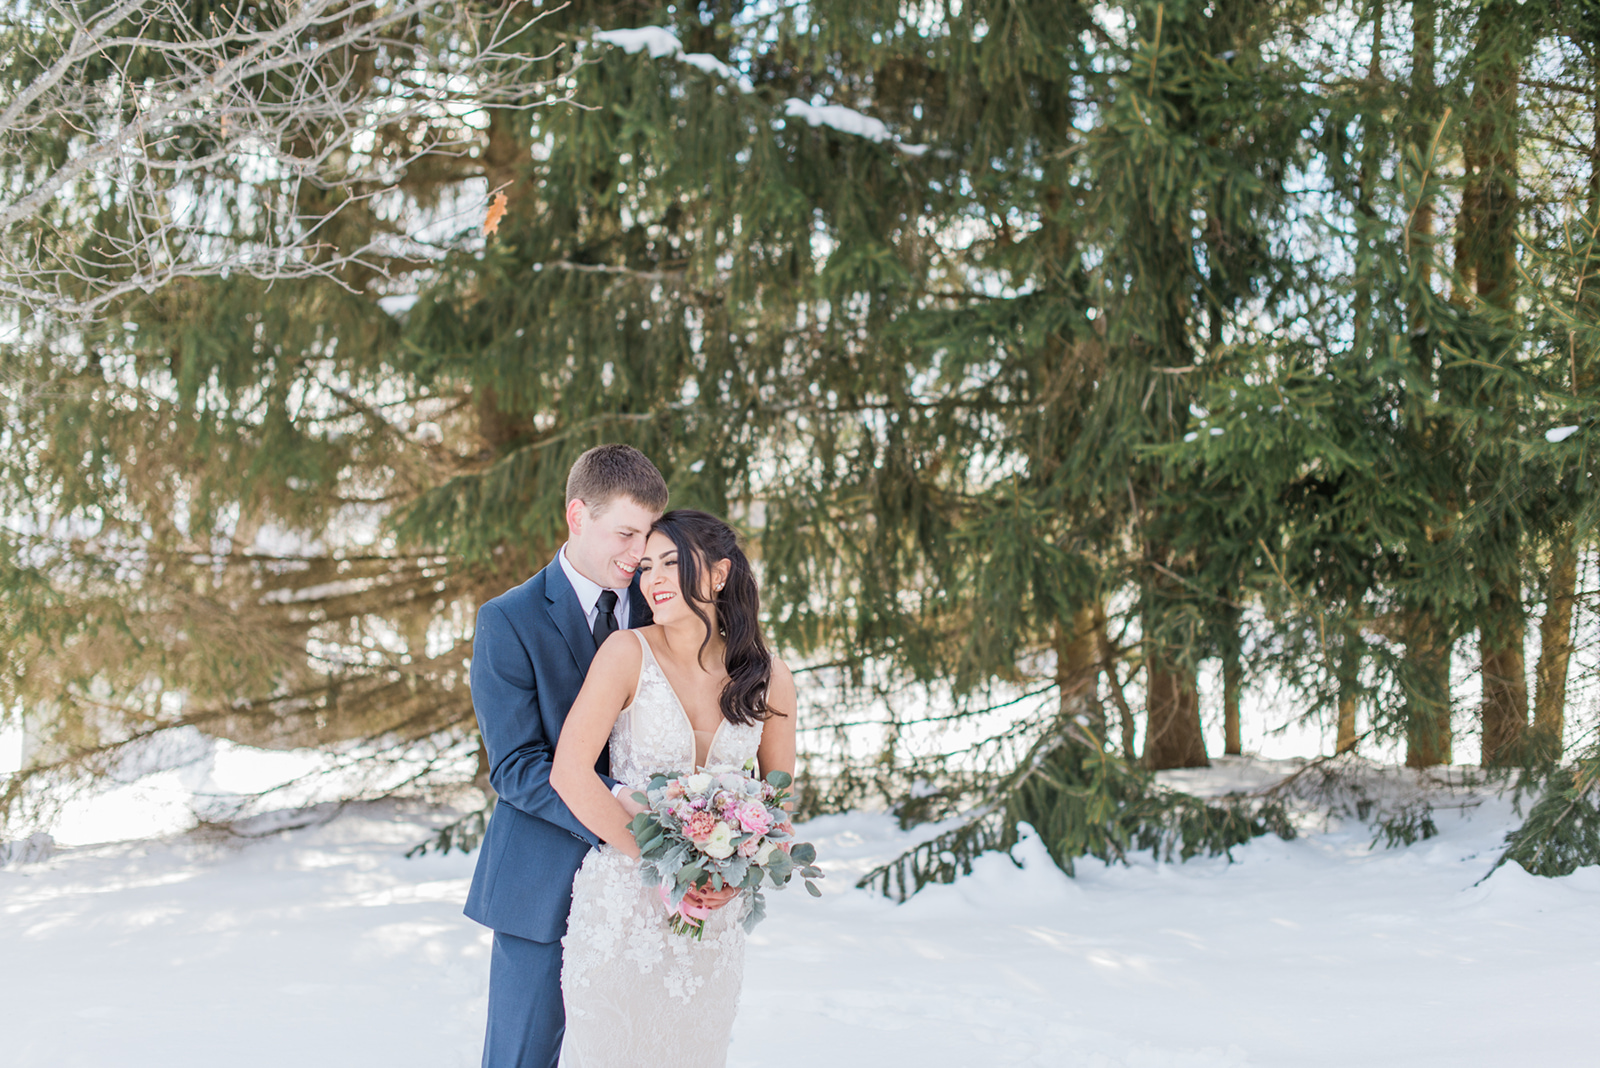 couple wedding photo outdoor winter photo